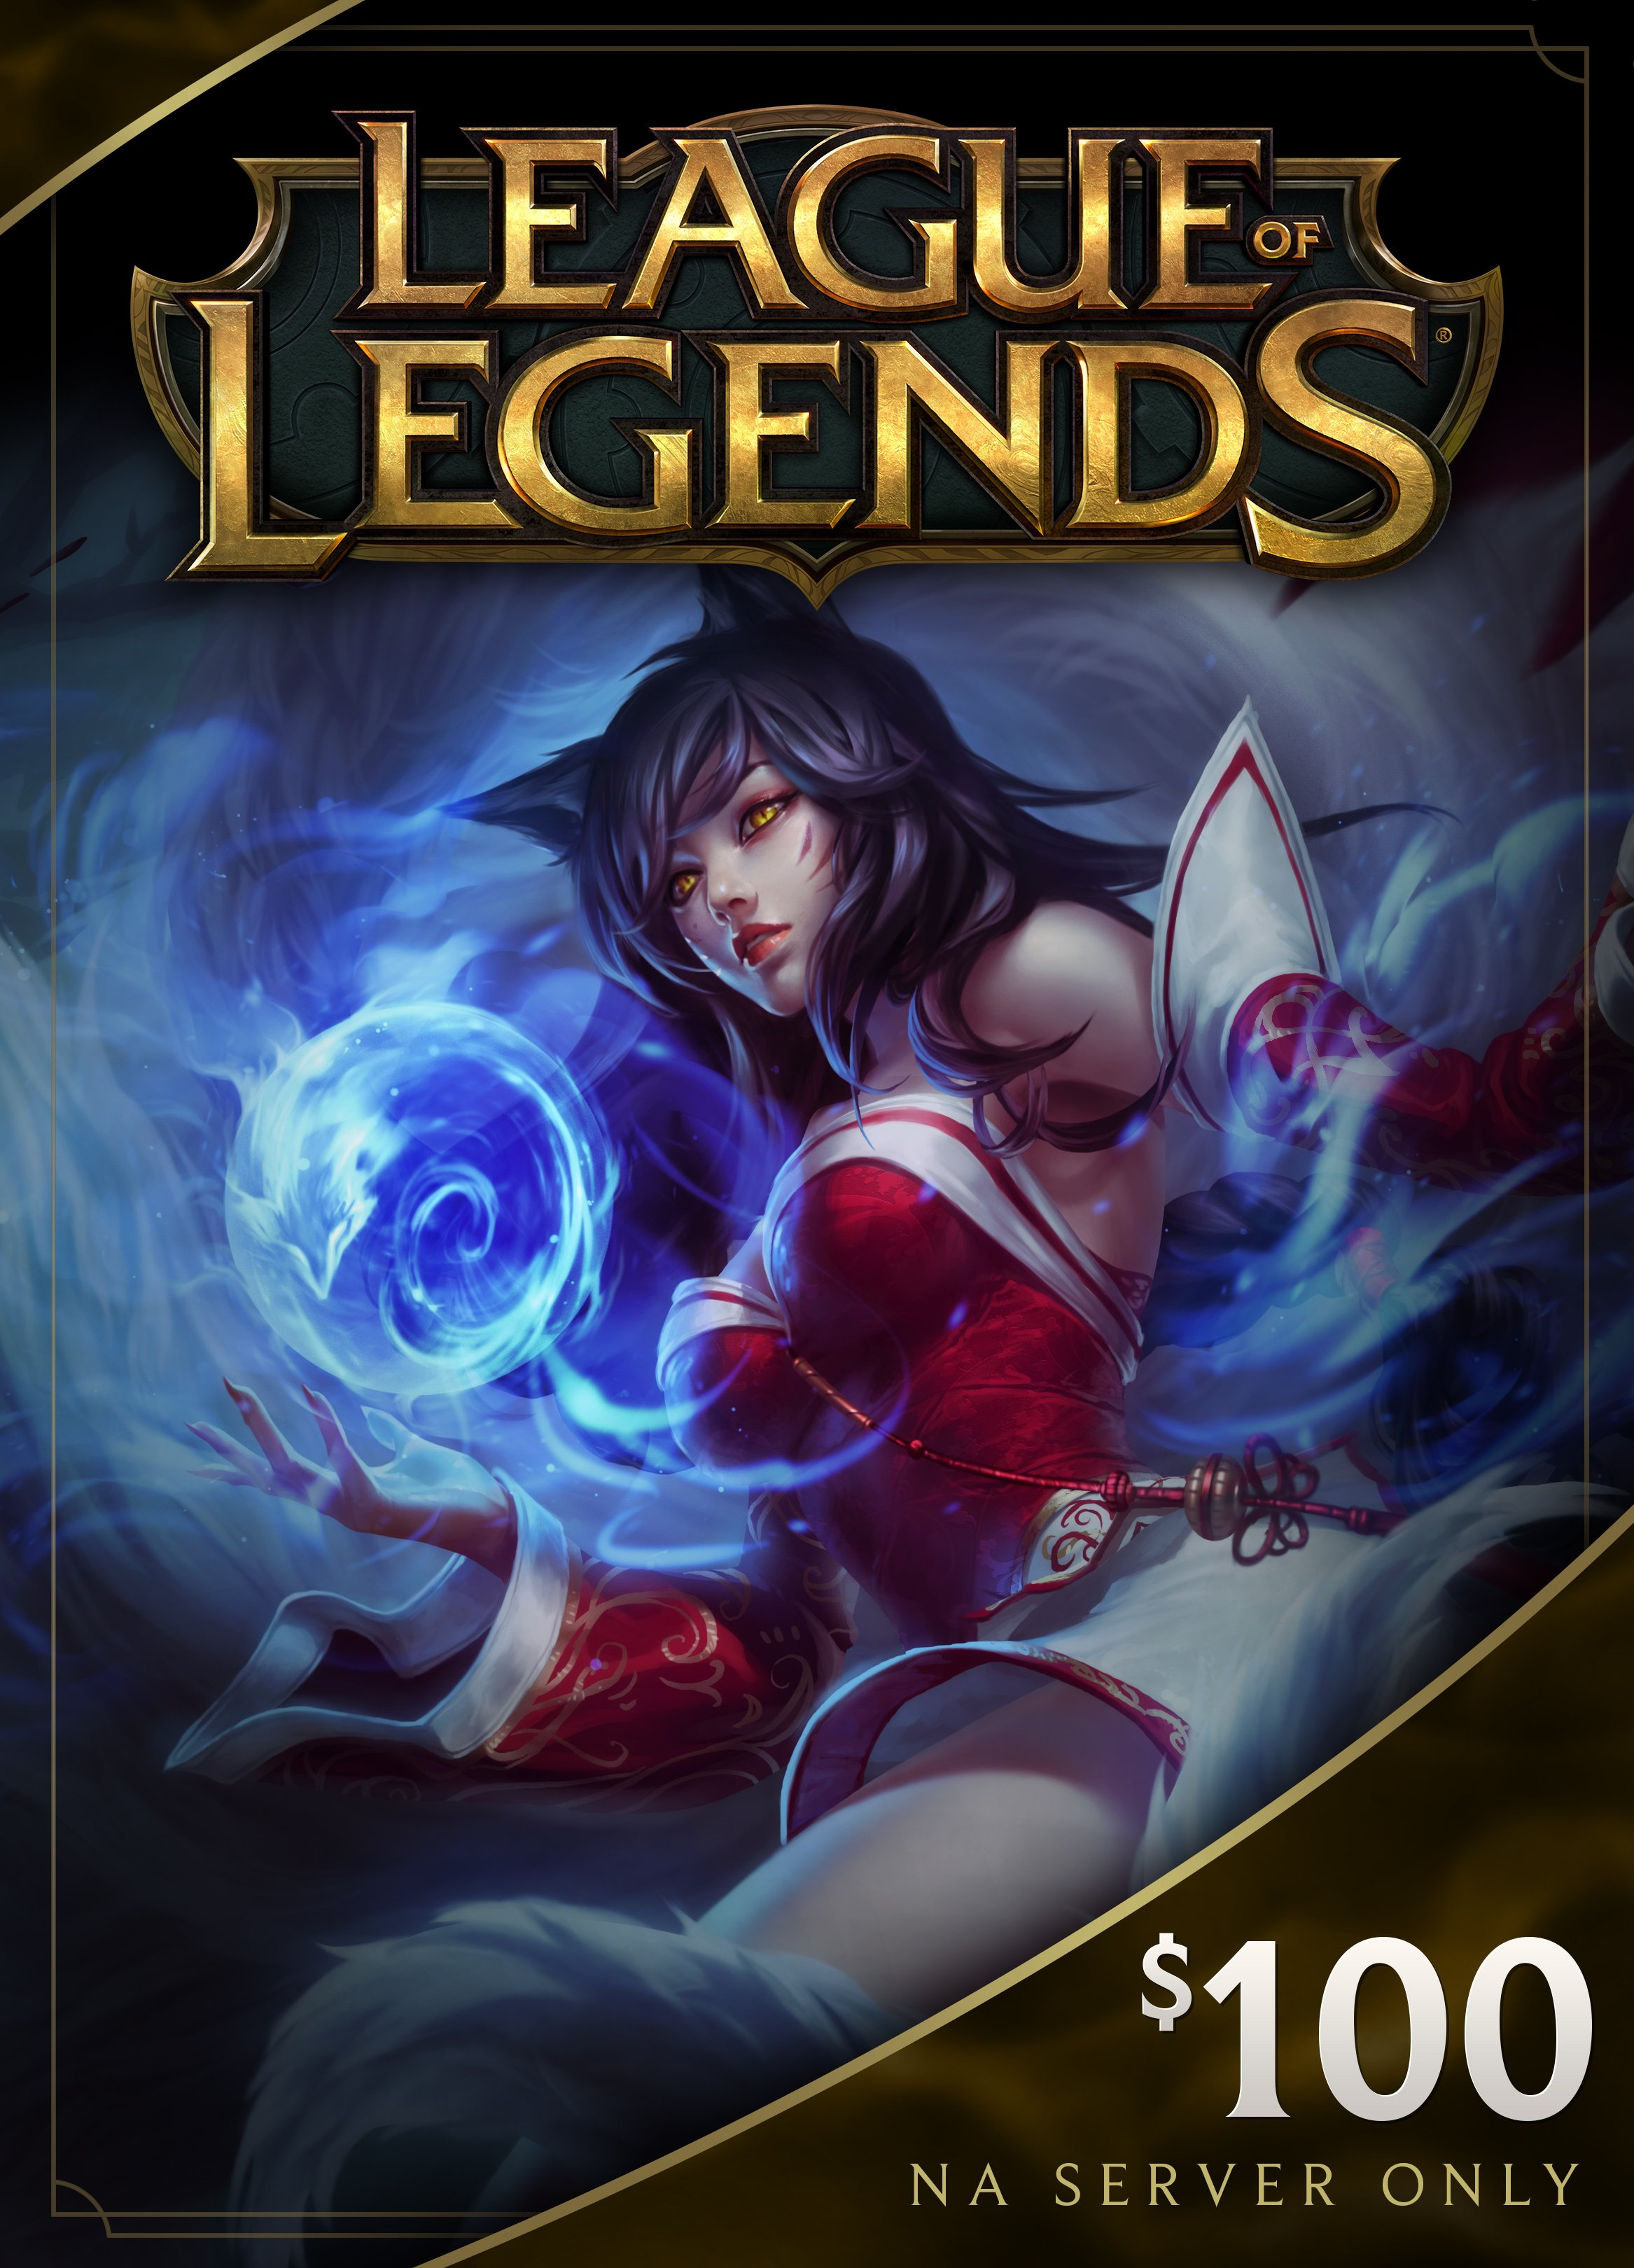 League of Legends $100 Gift Card - 15000 Riot Points - NA Server Only [Online Game Code]